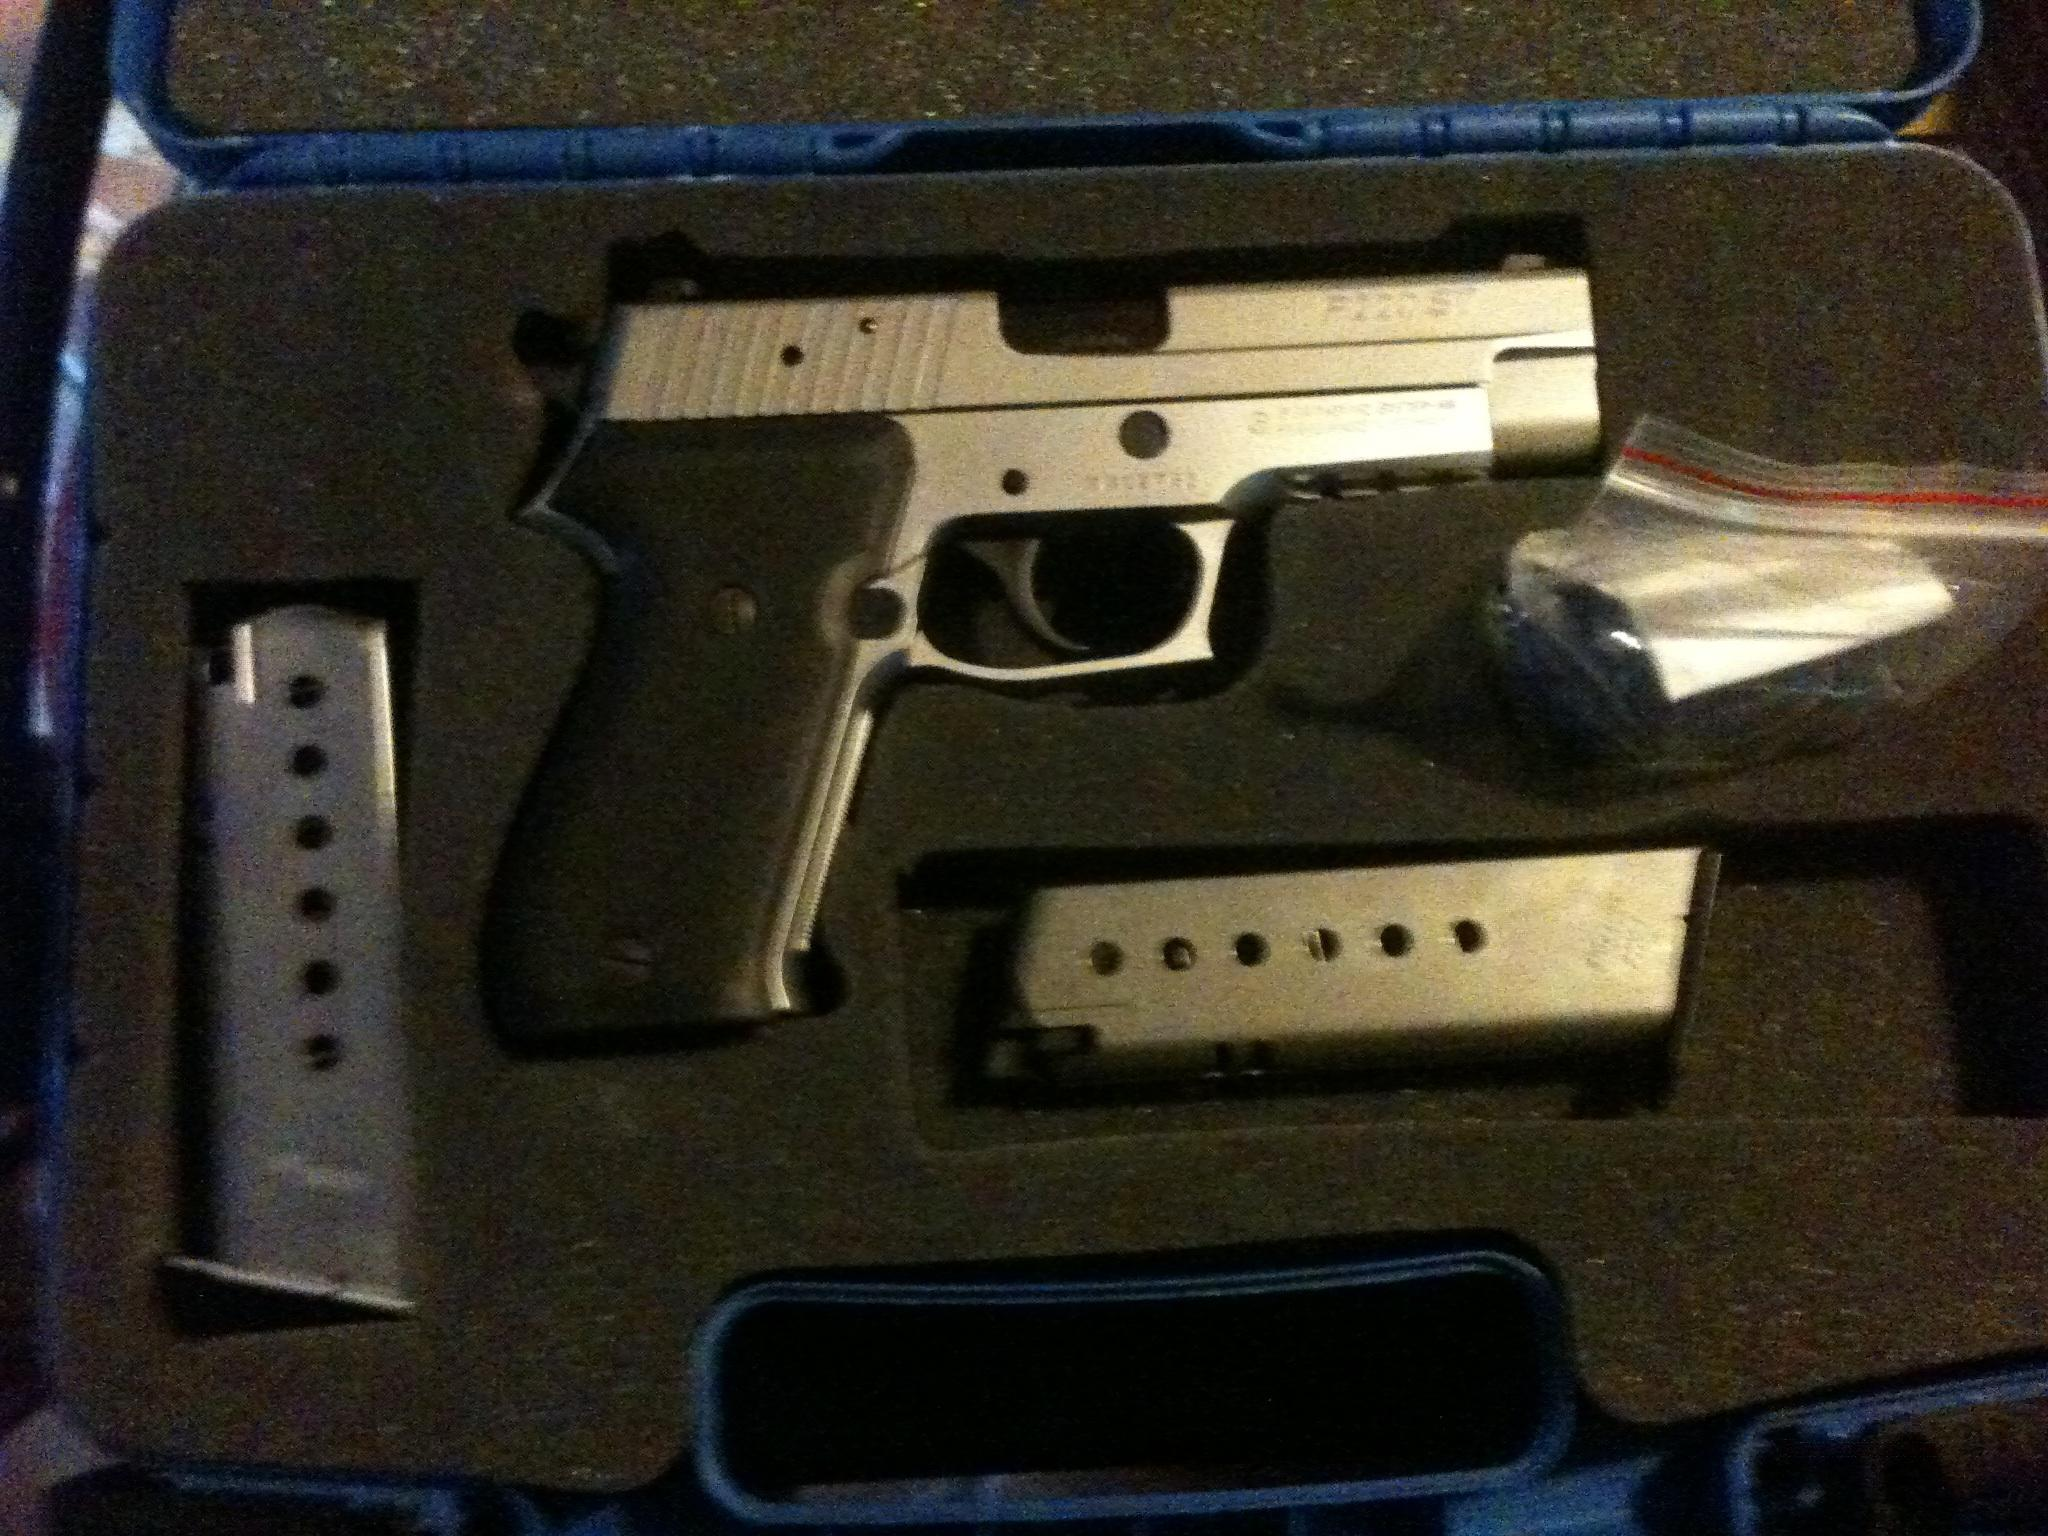 Sig 220 st (stainless steel)  Guns > Pistols > Sig - Sauer/Sigarms Pistols > P220